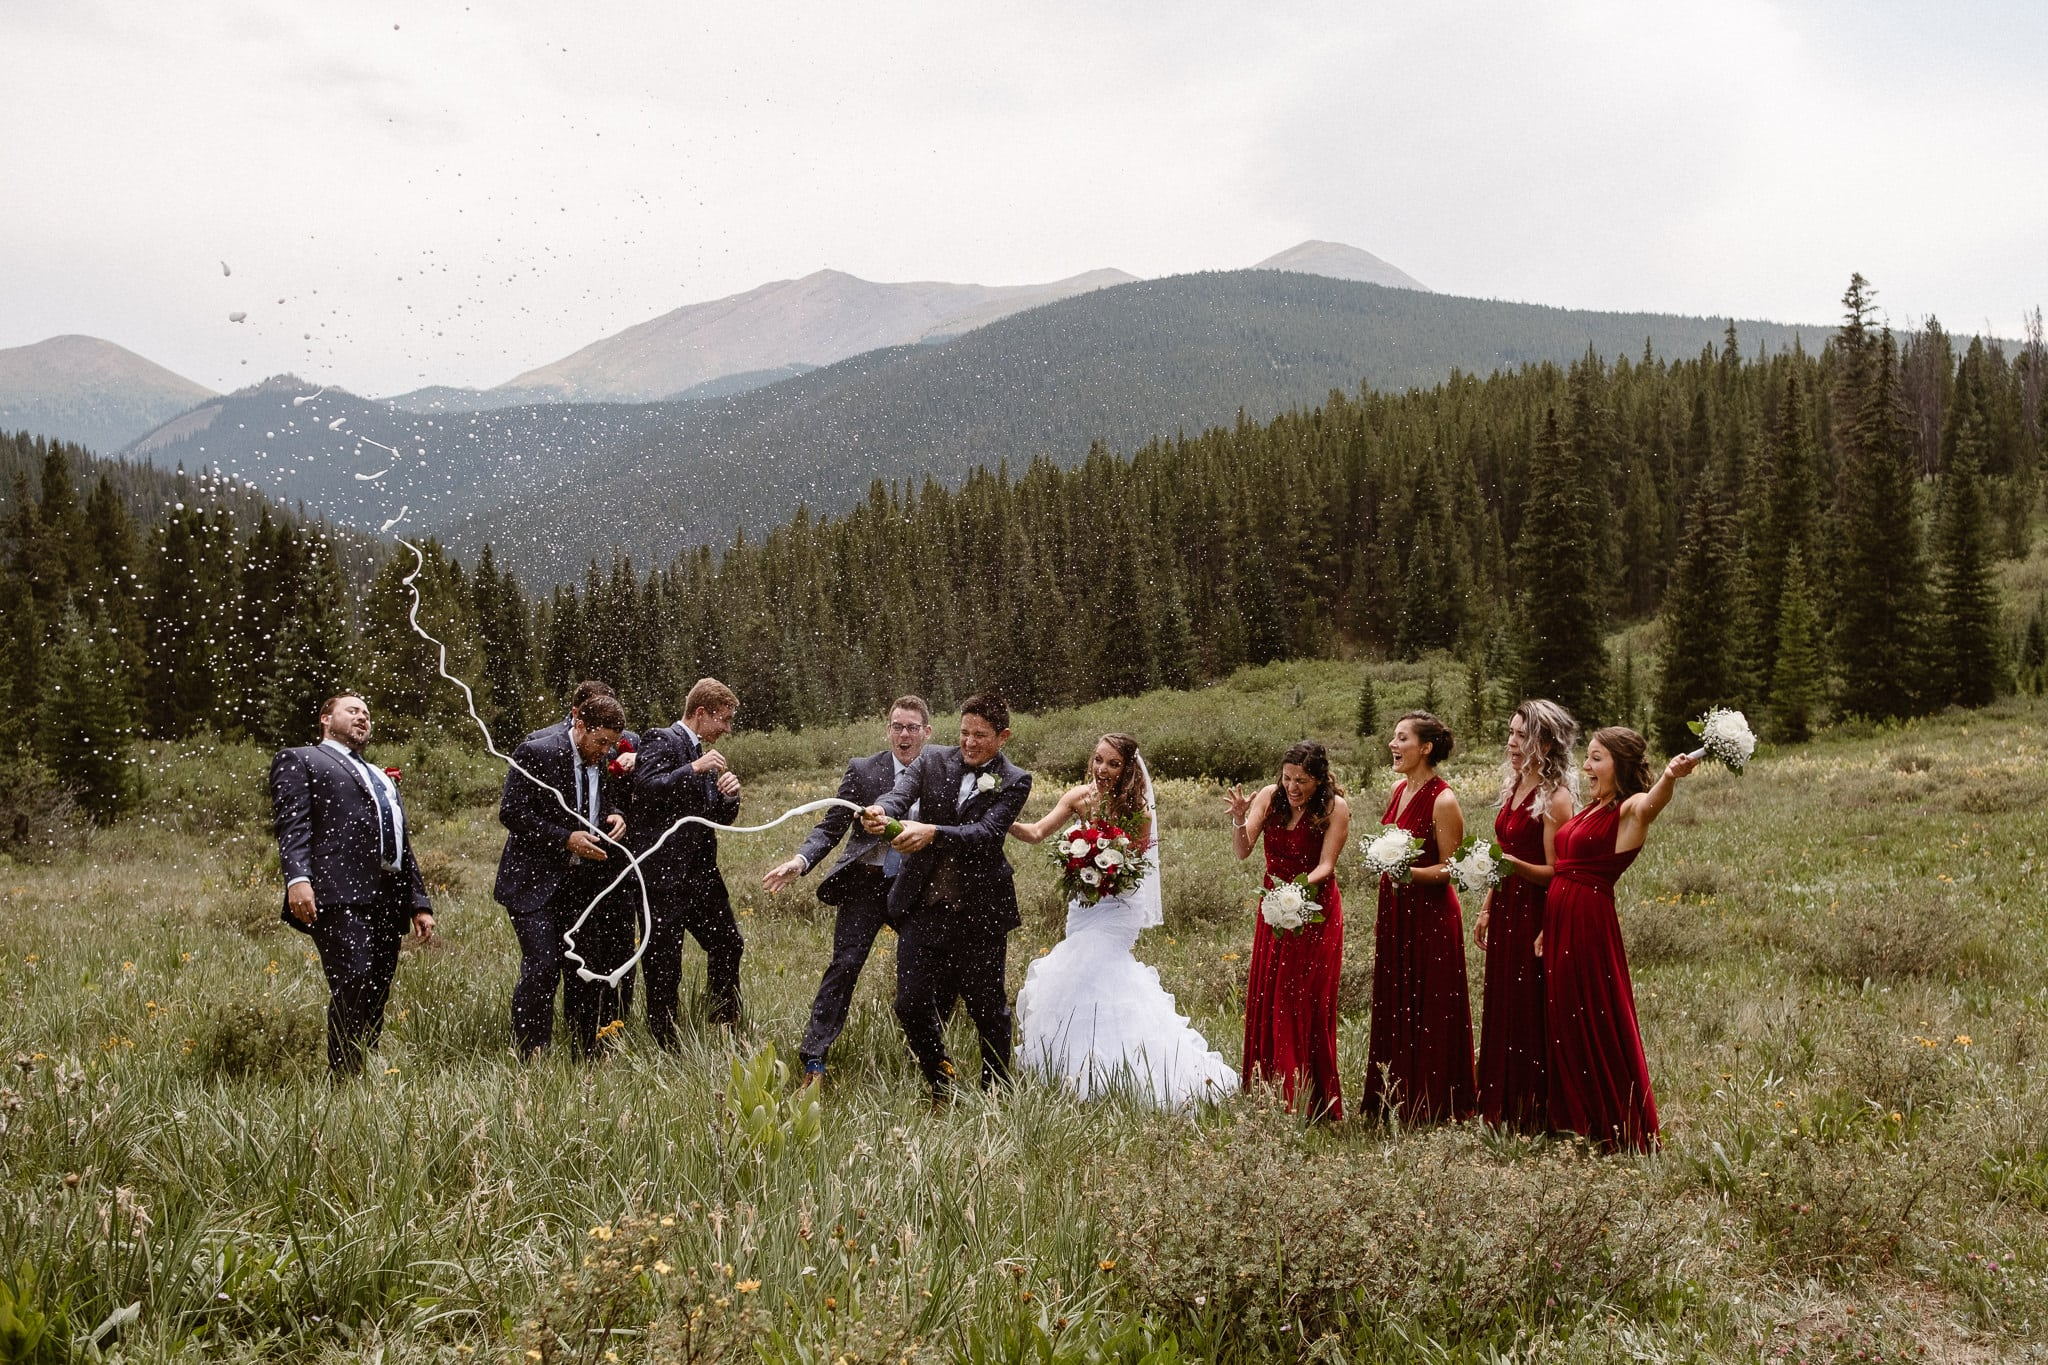 Lodge at Breckenridge Wedding Photographer, Colorado mountain wedding photographer, intimate wedding, bride and groom walking through alpine meadow with wedding party, bride and groom portrait, wedding photos, dark red bridesmaid dresses, popping champagne bottle